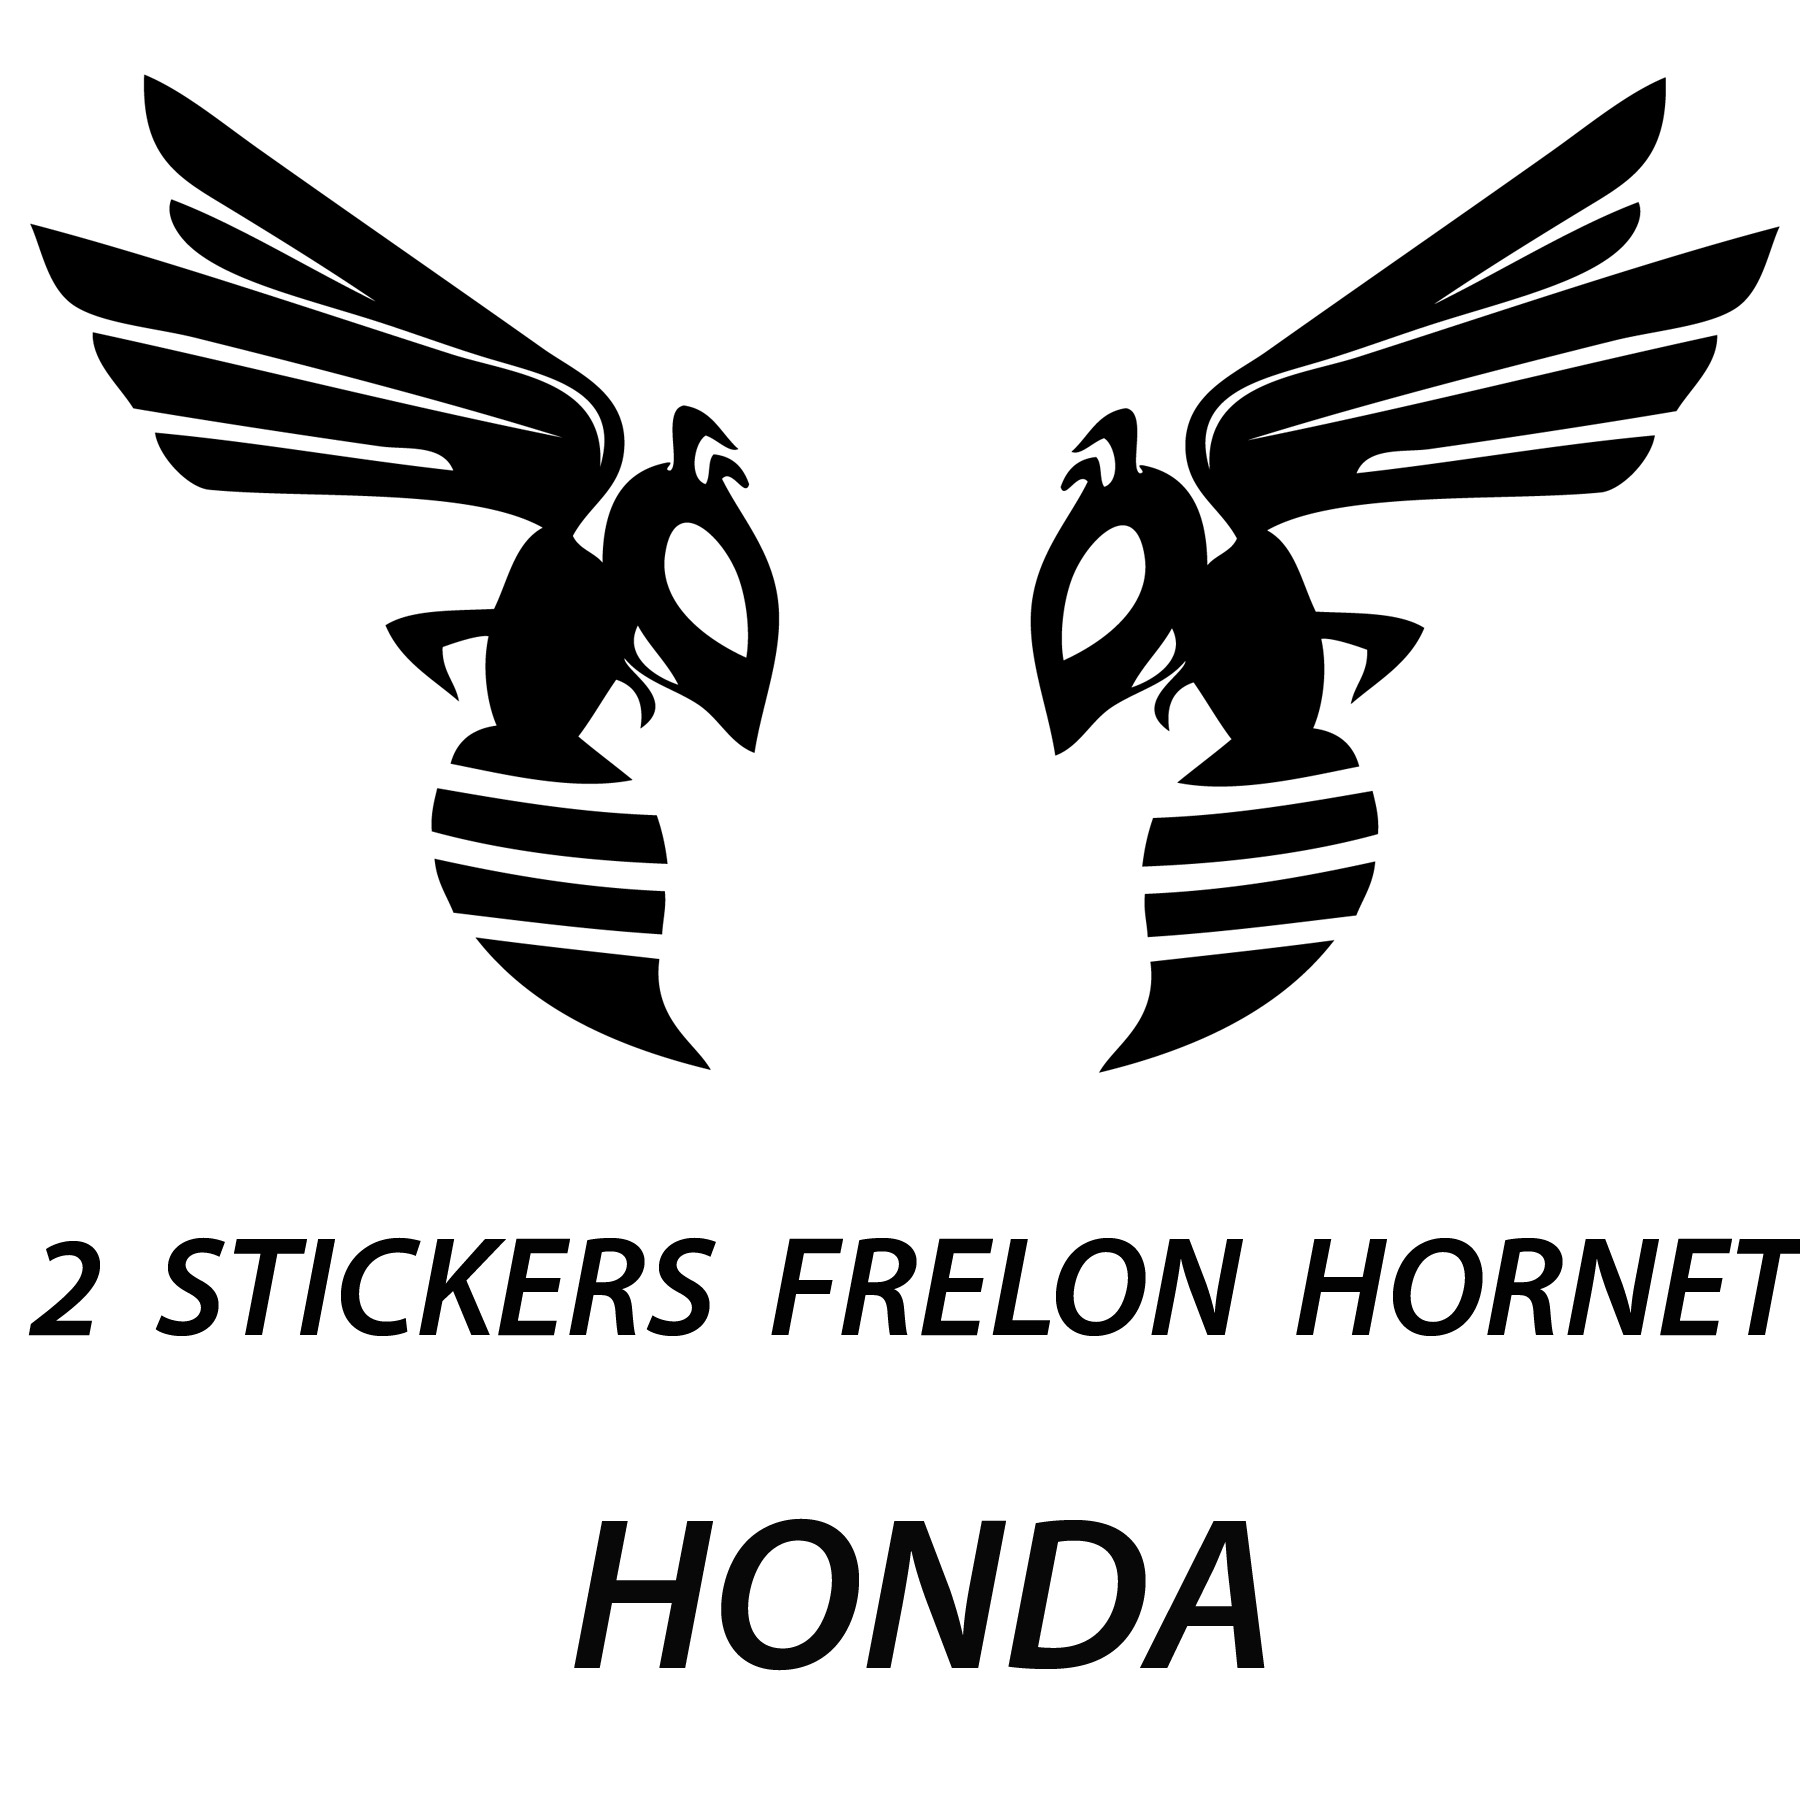 stickers autocollant tuning moto 2 frelons hornet honda tuning moto destock stickers. Black Bedroom Furniture Sets. Home Design Ideas